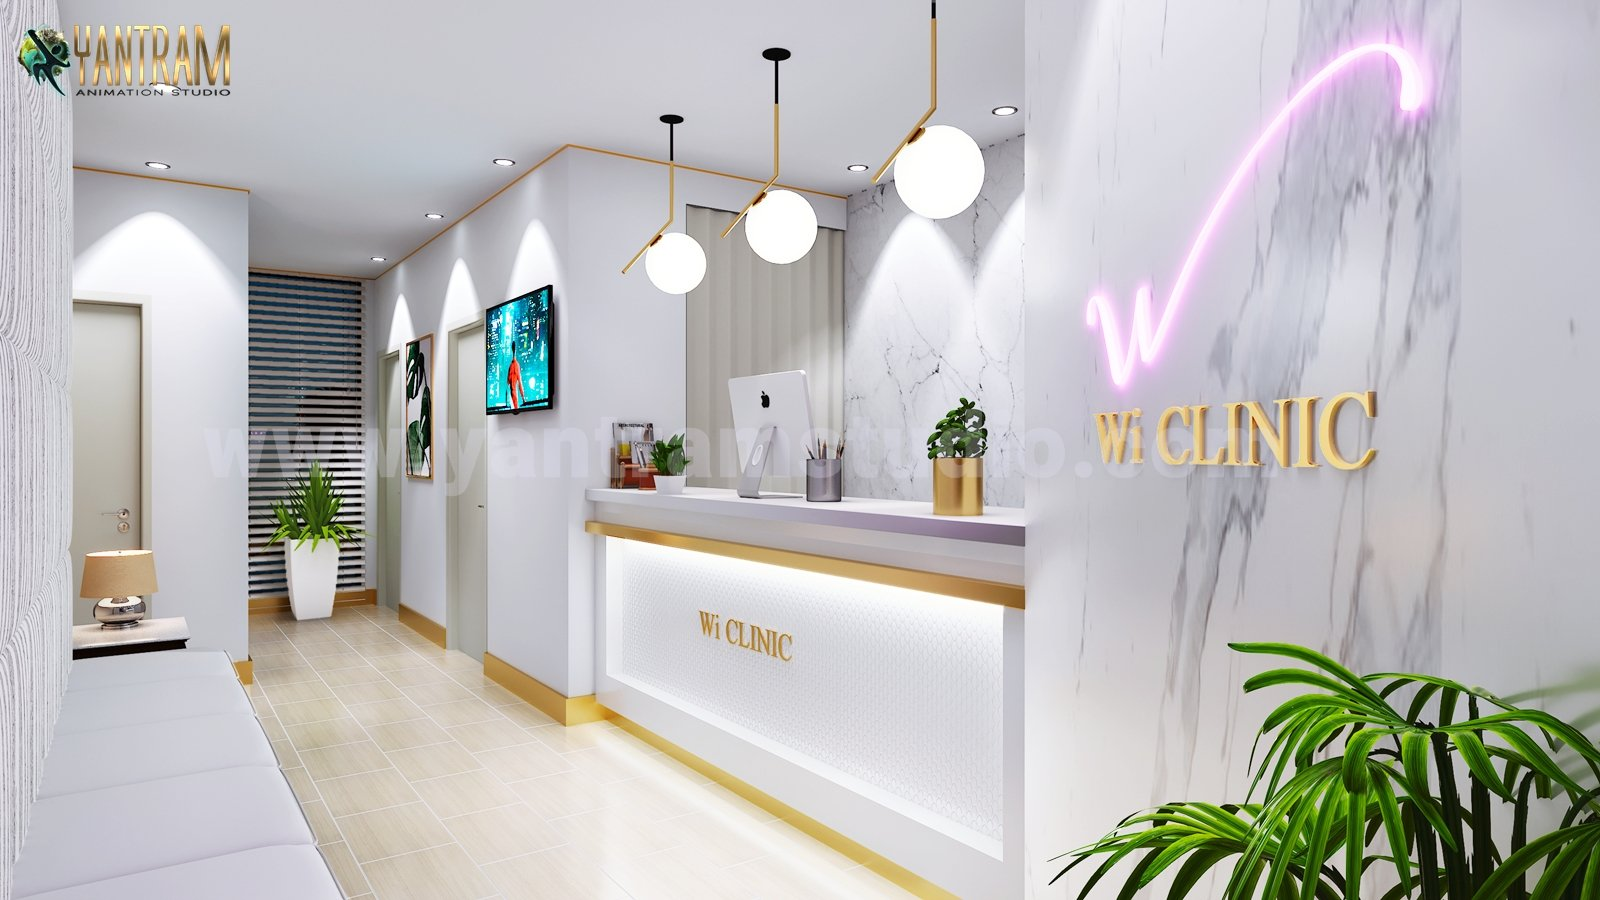 Contemporary, Minimalist Office Reception Desk 3D Interior Designers By Architectural Animation Services   London, UK